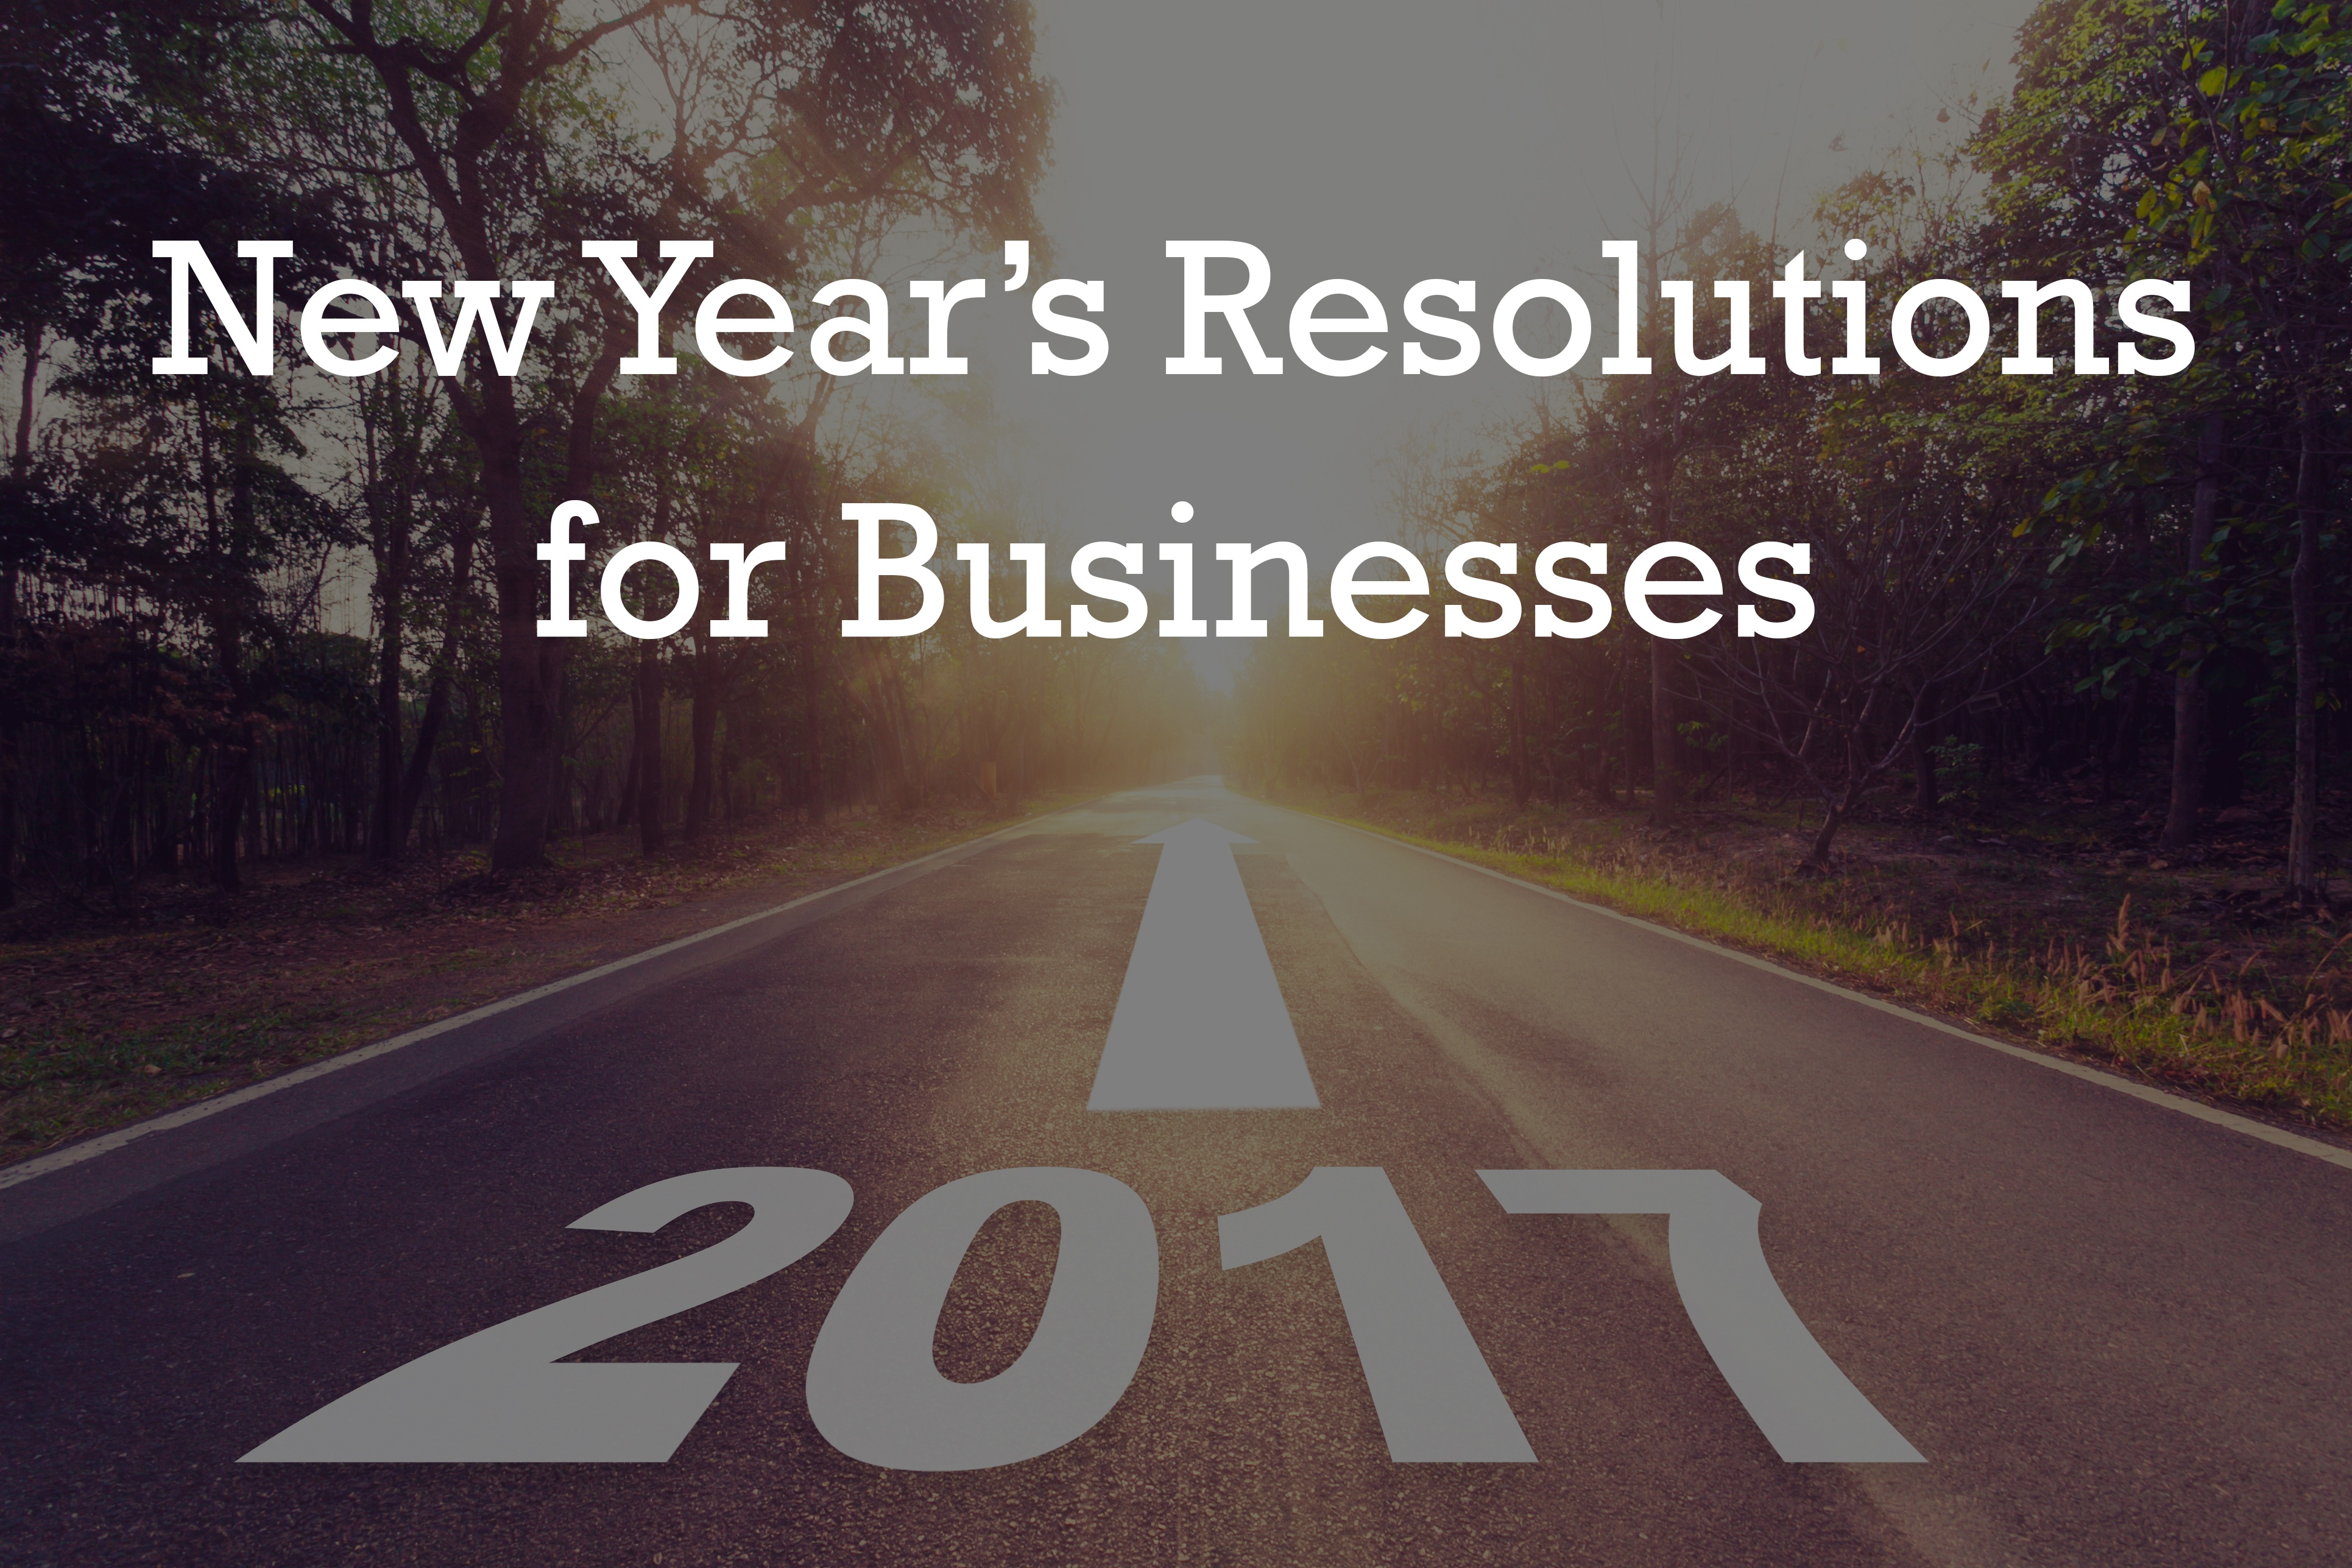 NY resolutions for businessses.jpg